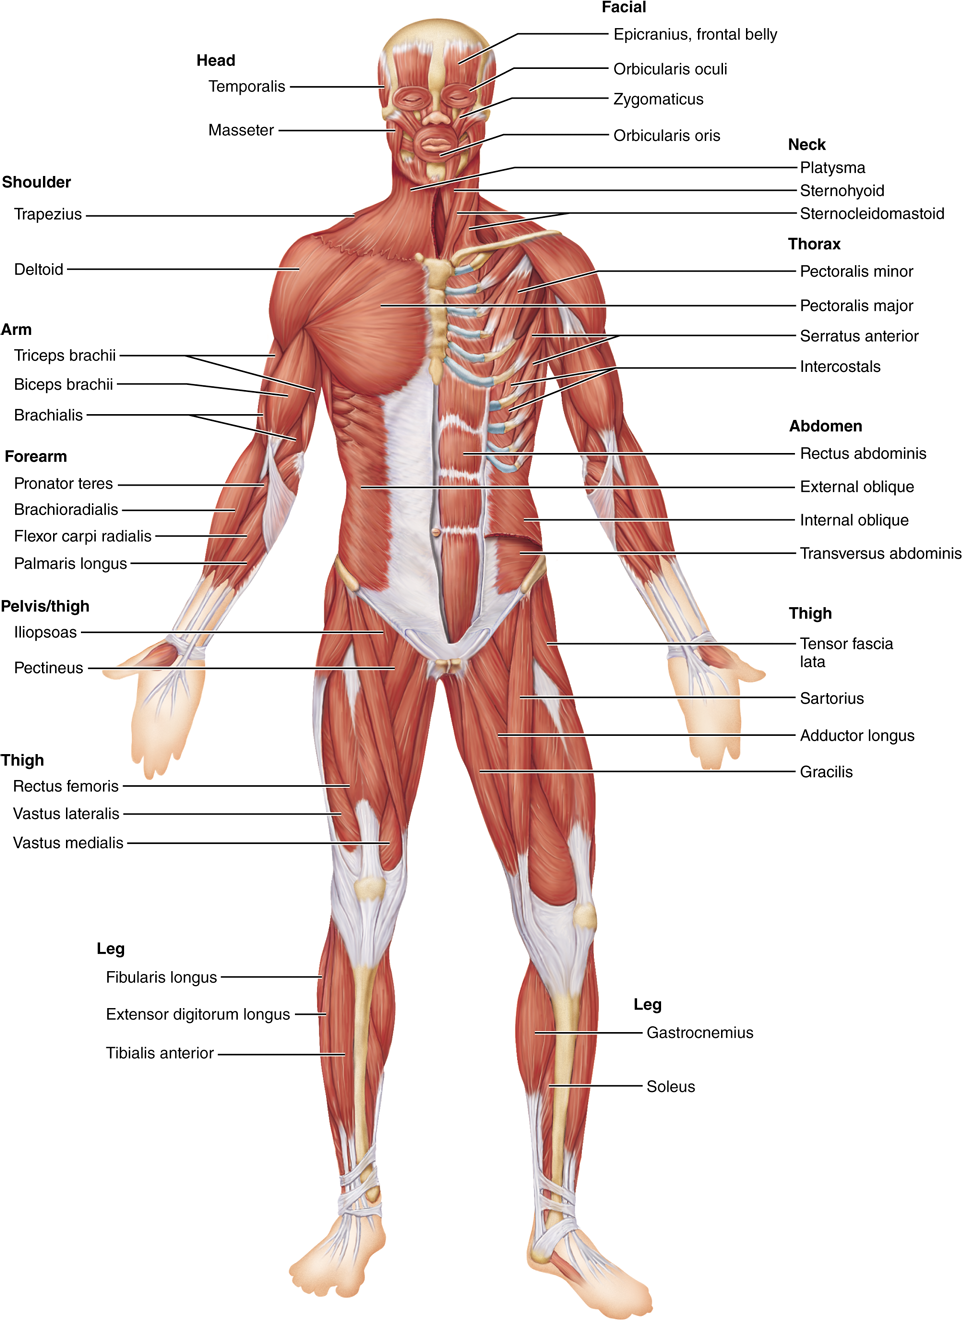 Human Anatomy And Physiology Pearson Etext 20 Anatomy